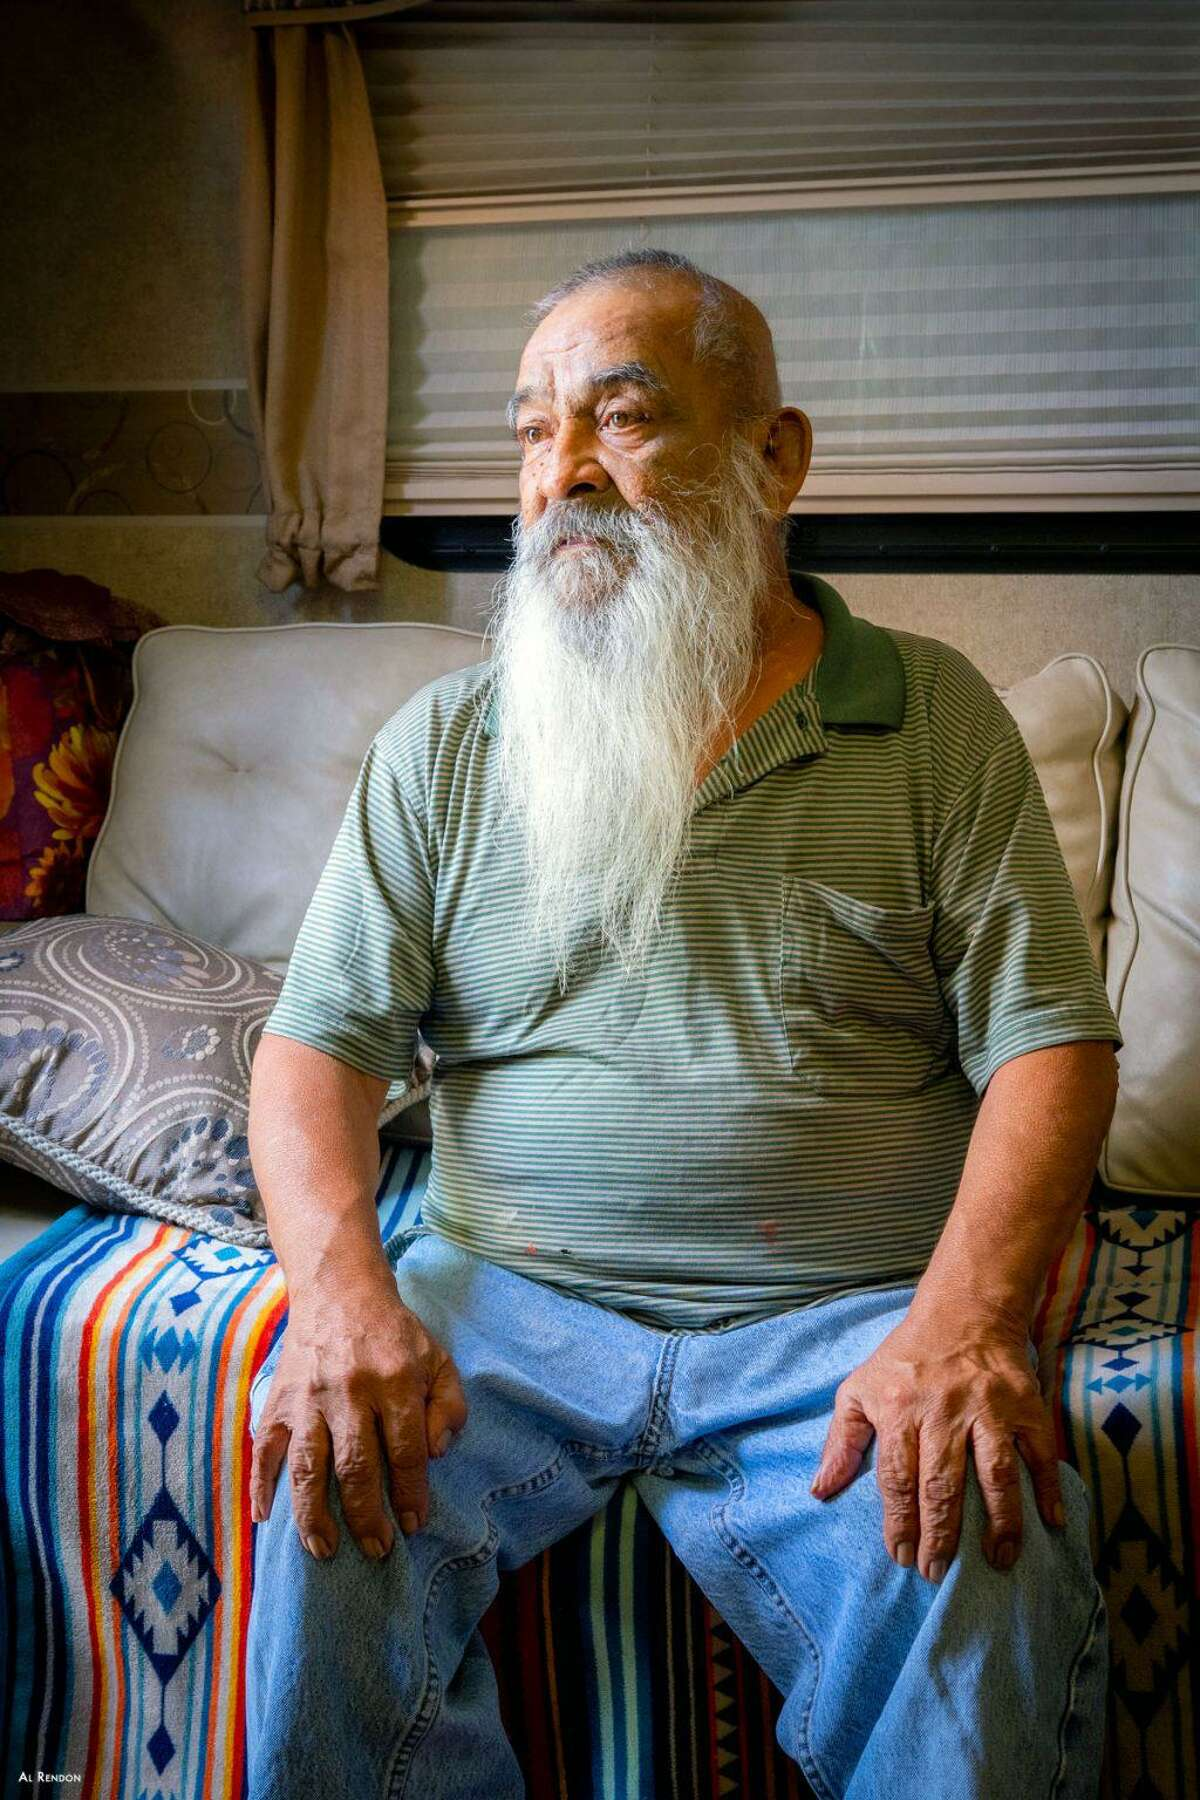 """Nicolas Paz of San Antonio was among those WellMed patients receiving home-based palliative care featured in the """"Faces of Resiliency"""" project by San Antonio photographer Al Rendon. It's part of FotoSeptiembre's lineup this year."""